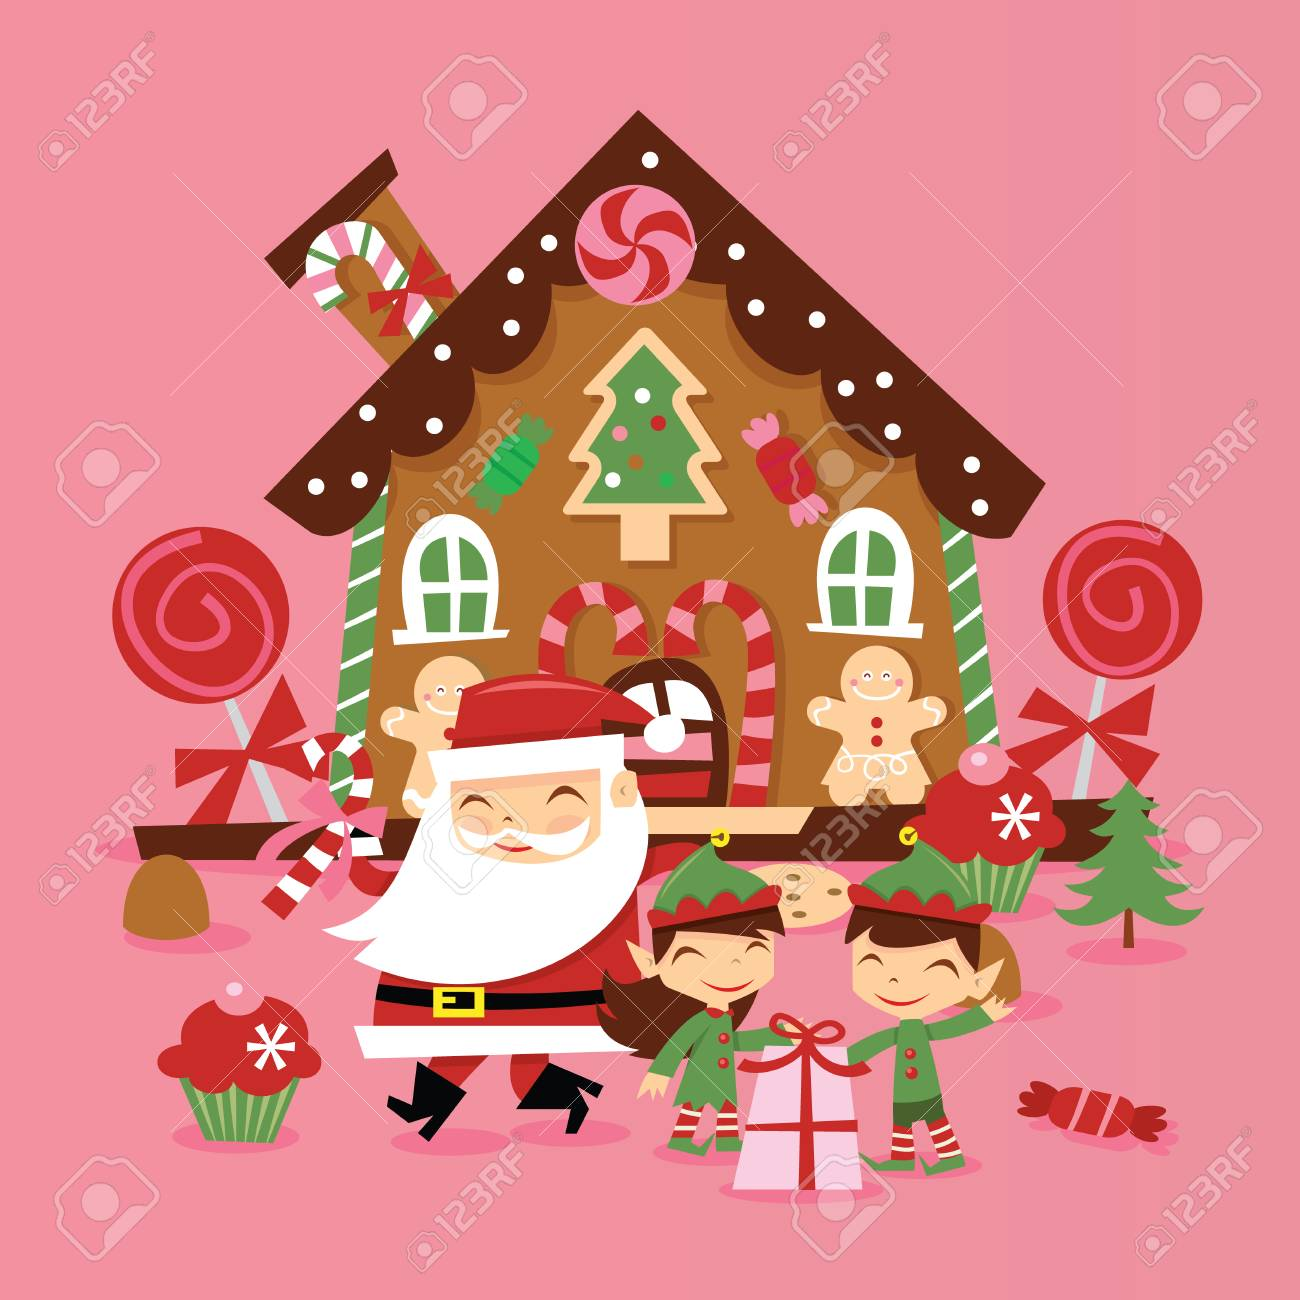 La casa di babbo natale parte 1 parte 2 parte 3 parte 4 parte 5: A Vector Illustration Of Super Cute Retro Santa Claus And His Elves In Front Of Whimiscal Gingerbread House With Gifts And Candies Royalty Free Cliparts Vectors And Stock Illustration Image 88307334